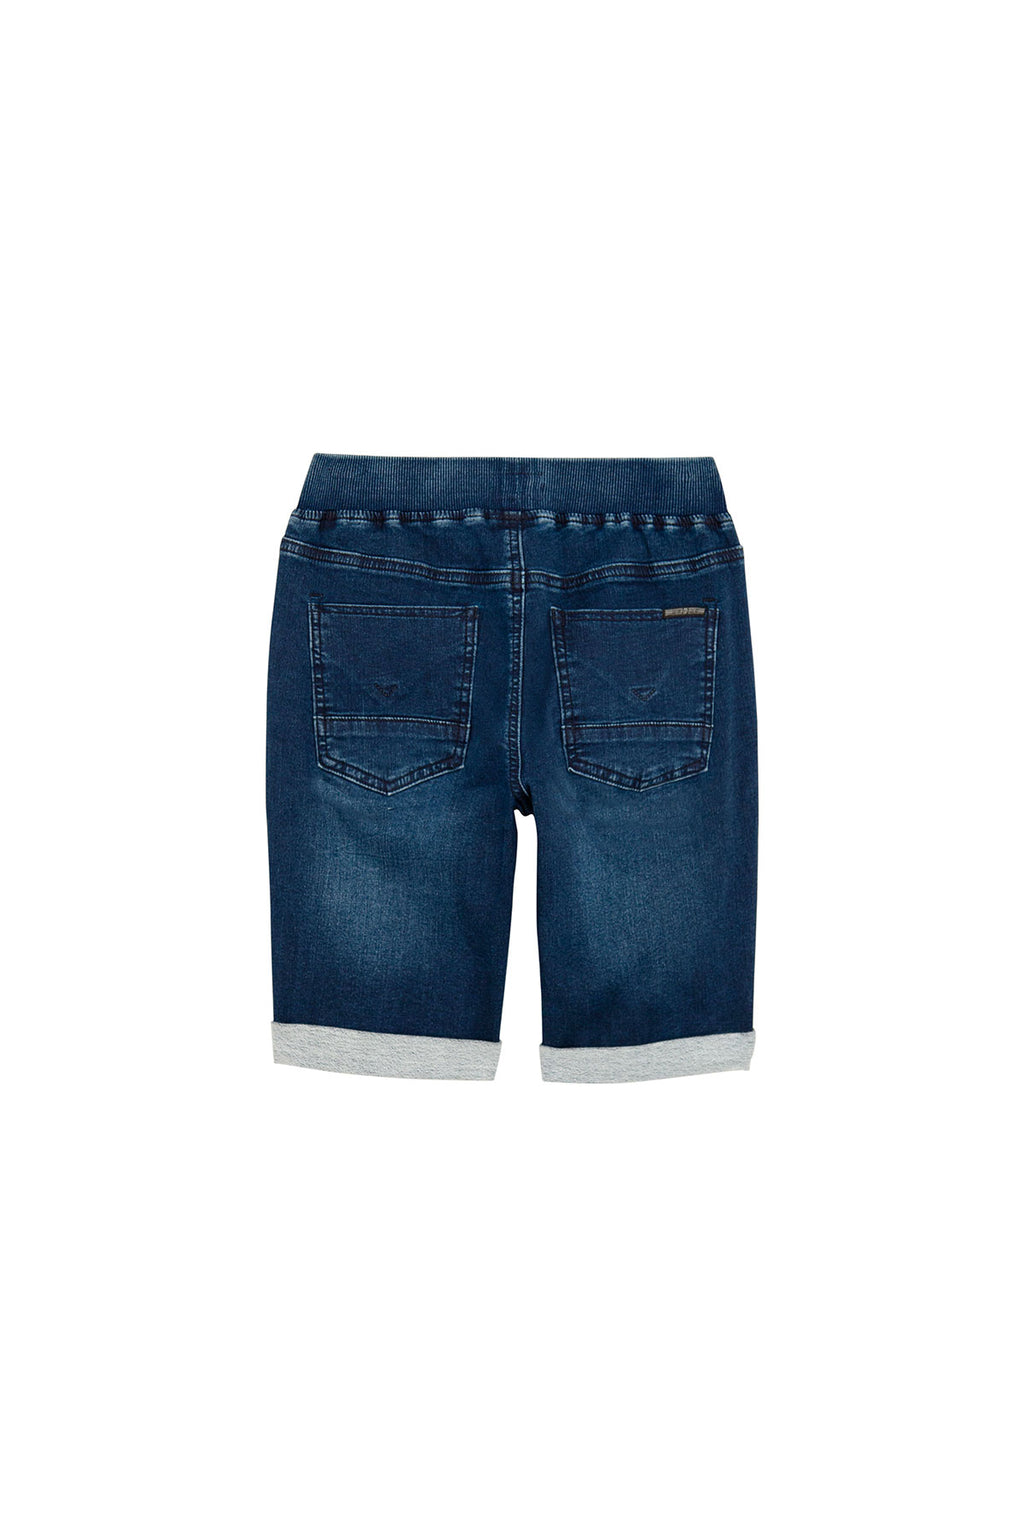 BOYS TAJ SHORT, SIZES 8-20 - CROSS BONES - Image 2